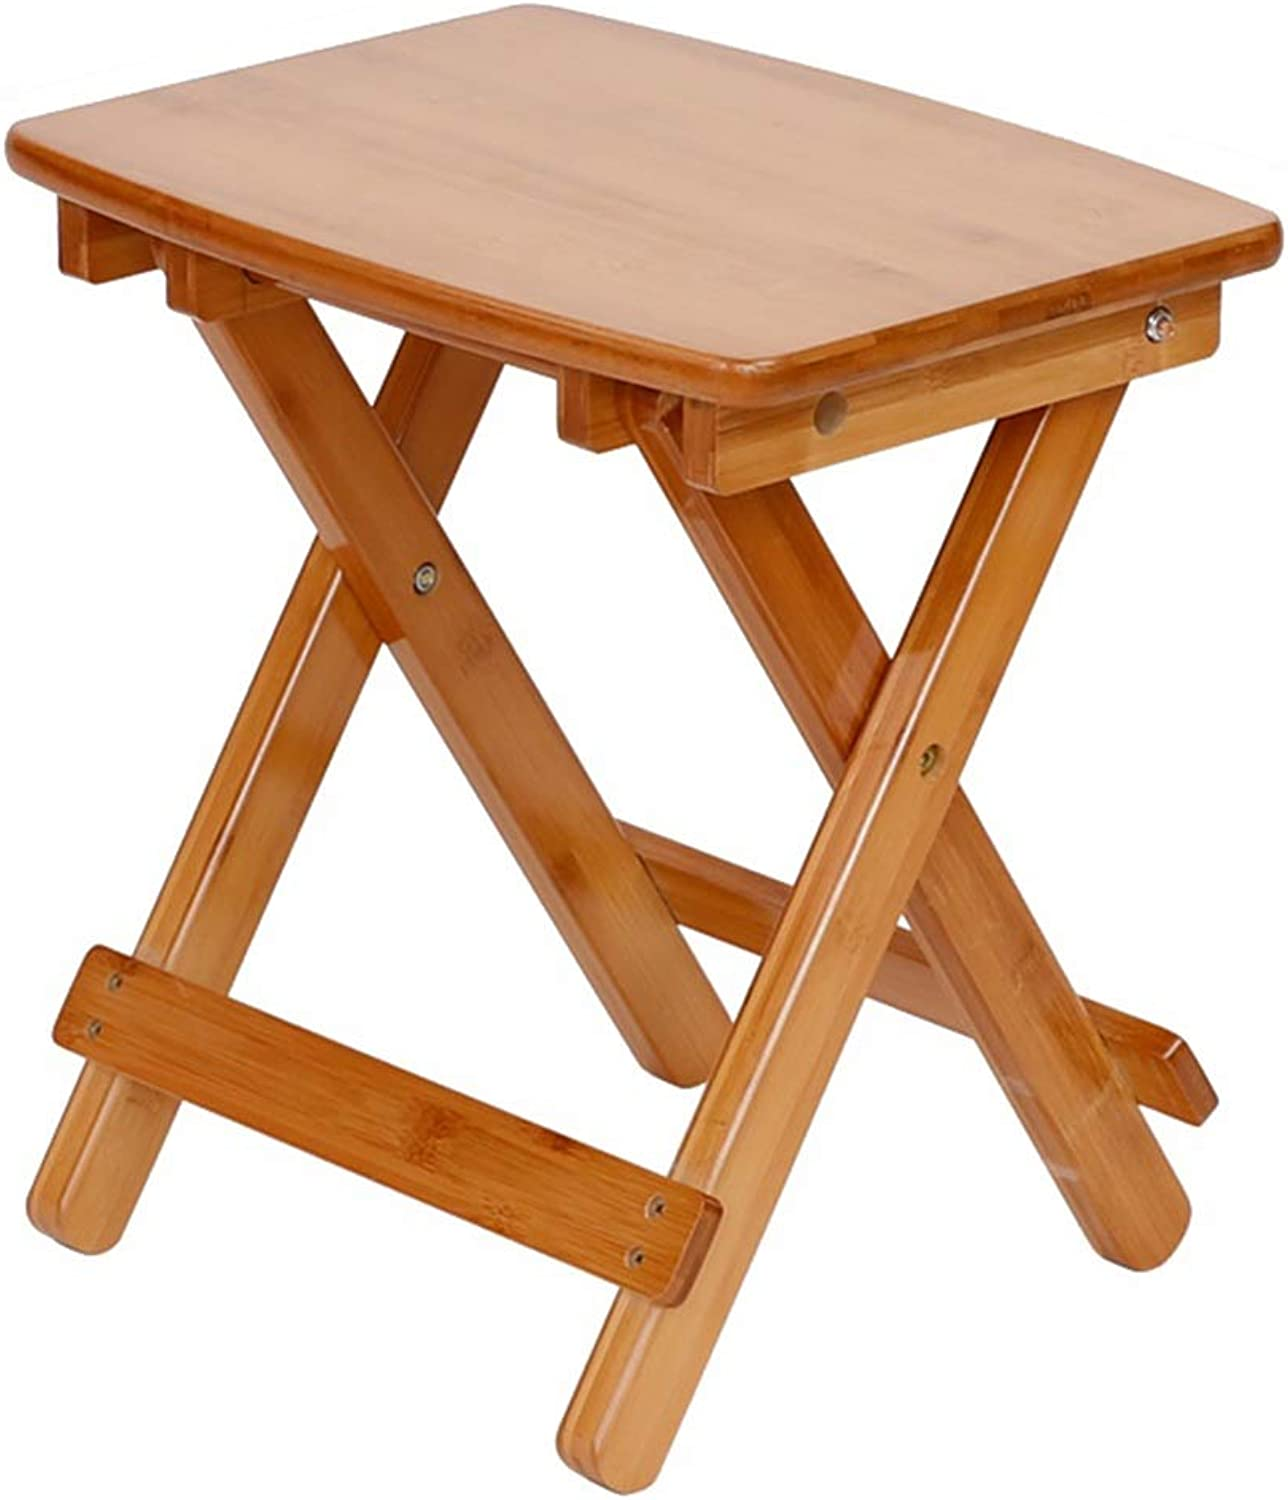 Folding Stool Folding Step Mazza Portable Stool Mazar shoes Stool Footstool Step Stool Adjustable Foot Rest Collapsible Bamboo Bench Mazza Portable Household GAOFENG (color   Natural Arc-S)